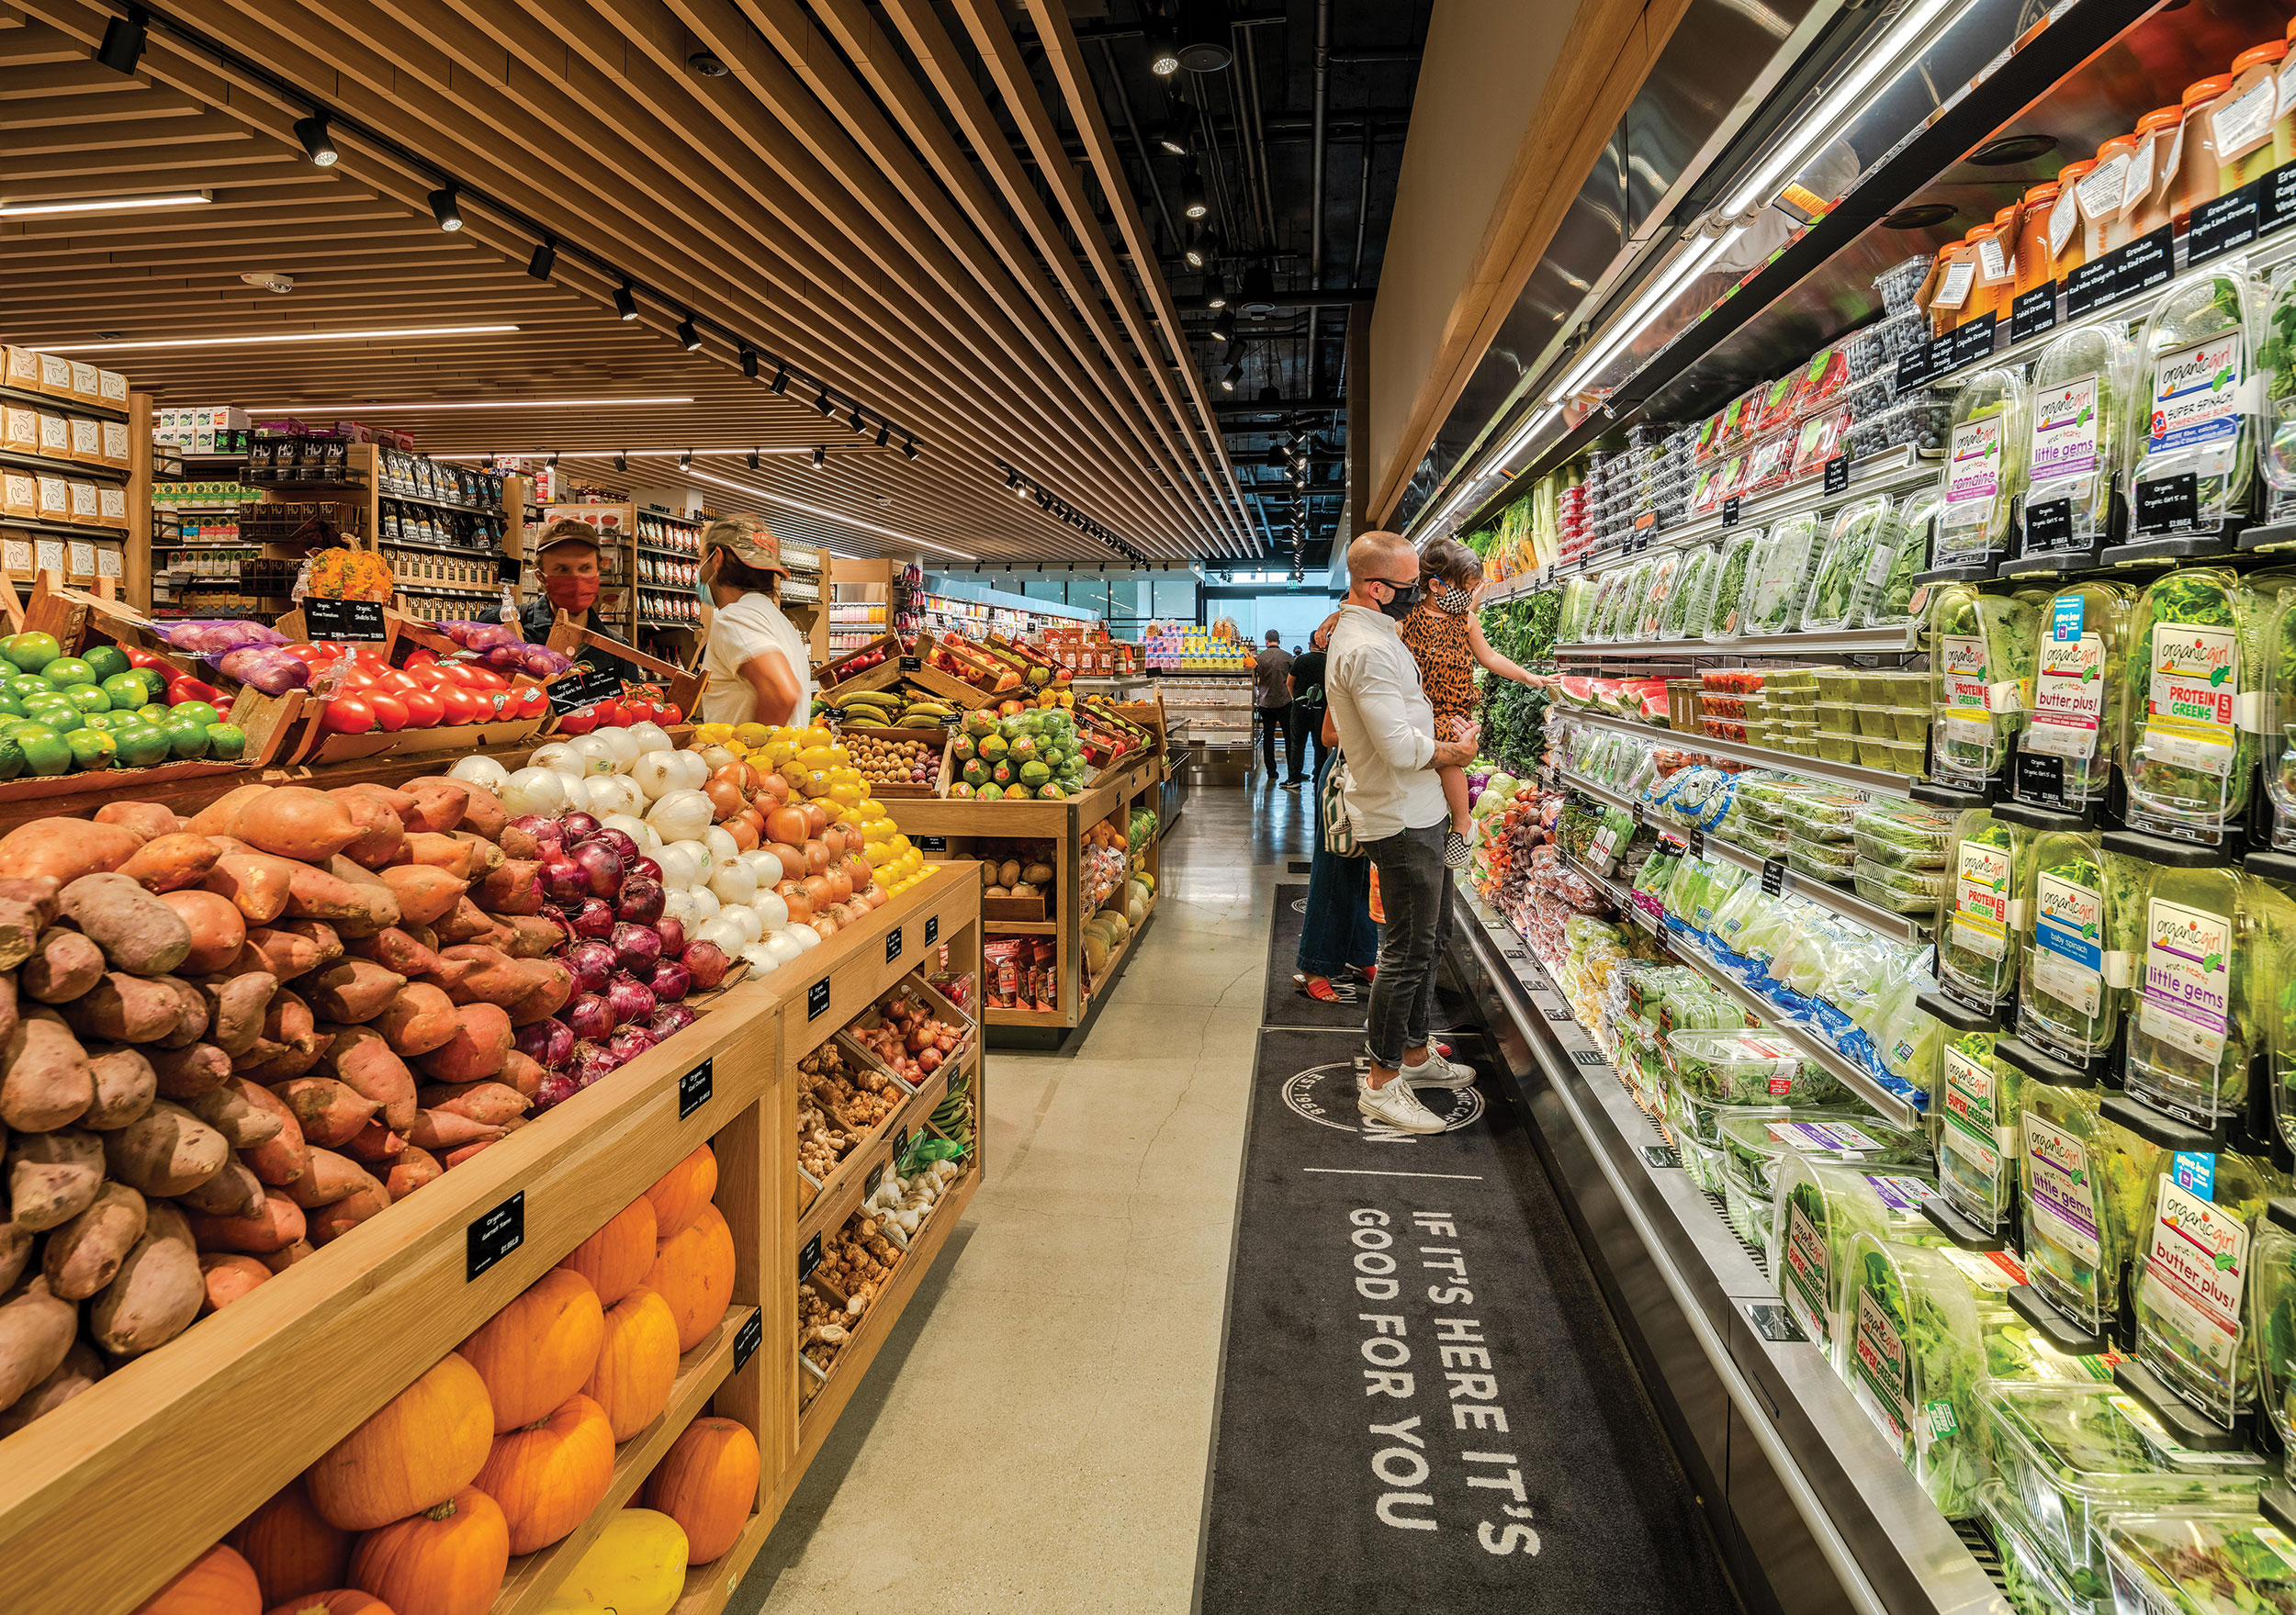 Many grocers, like Erewhon (shown), reconfigured their spaces due to restrictions brought about by the COVID-19 pandemic.